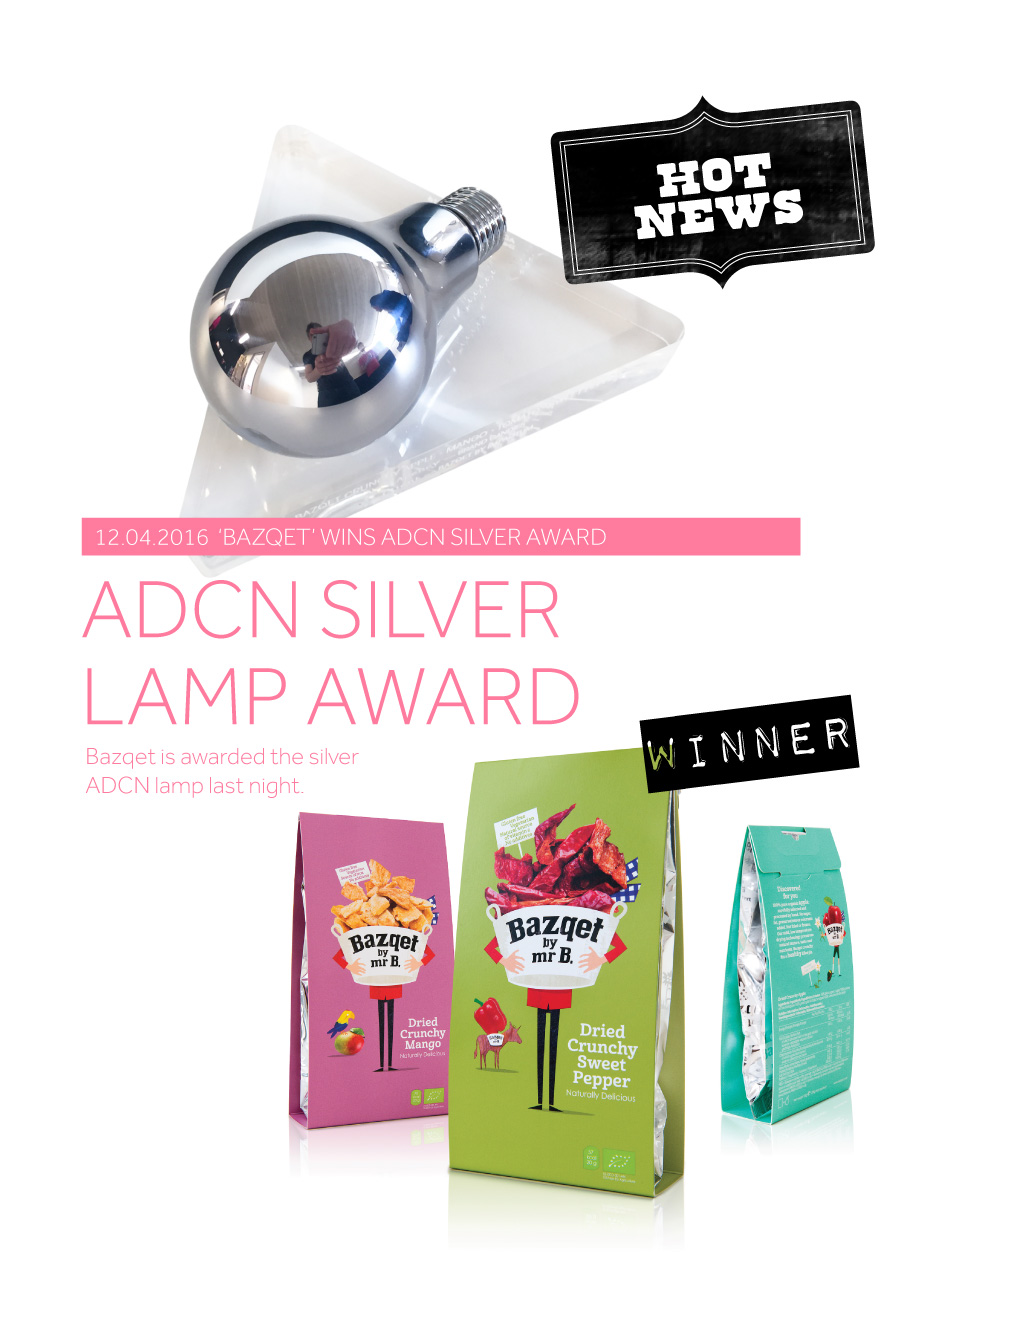 Bazqet is Winner of Silver ADCN Lamp